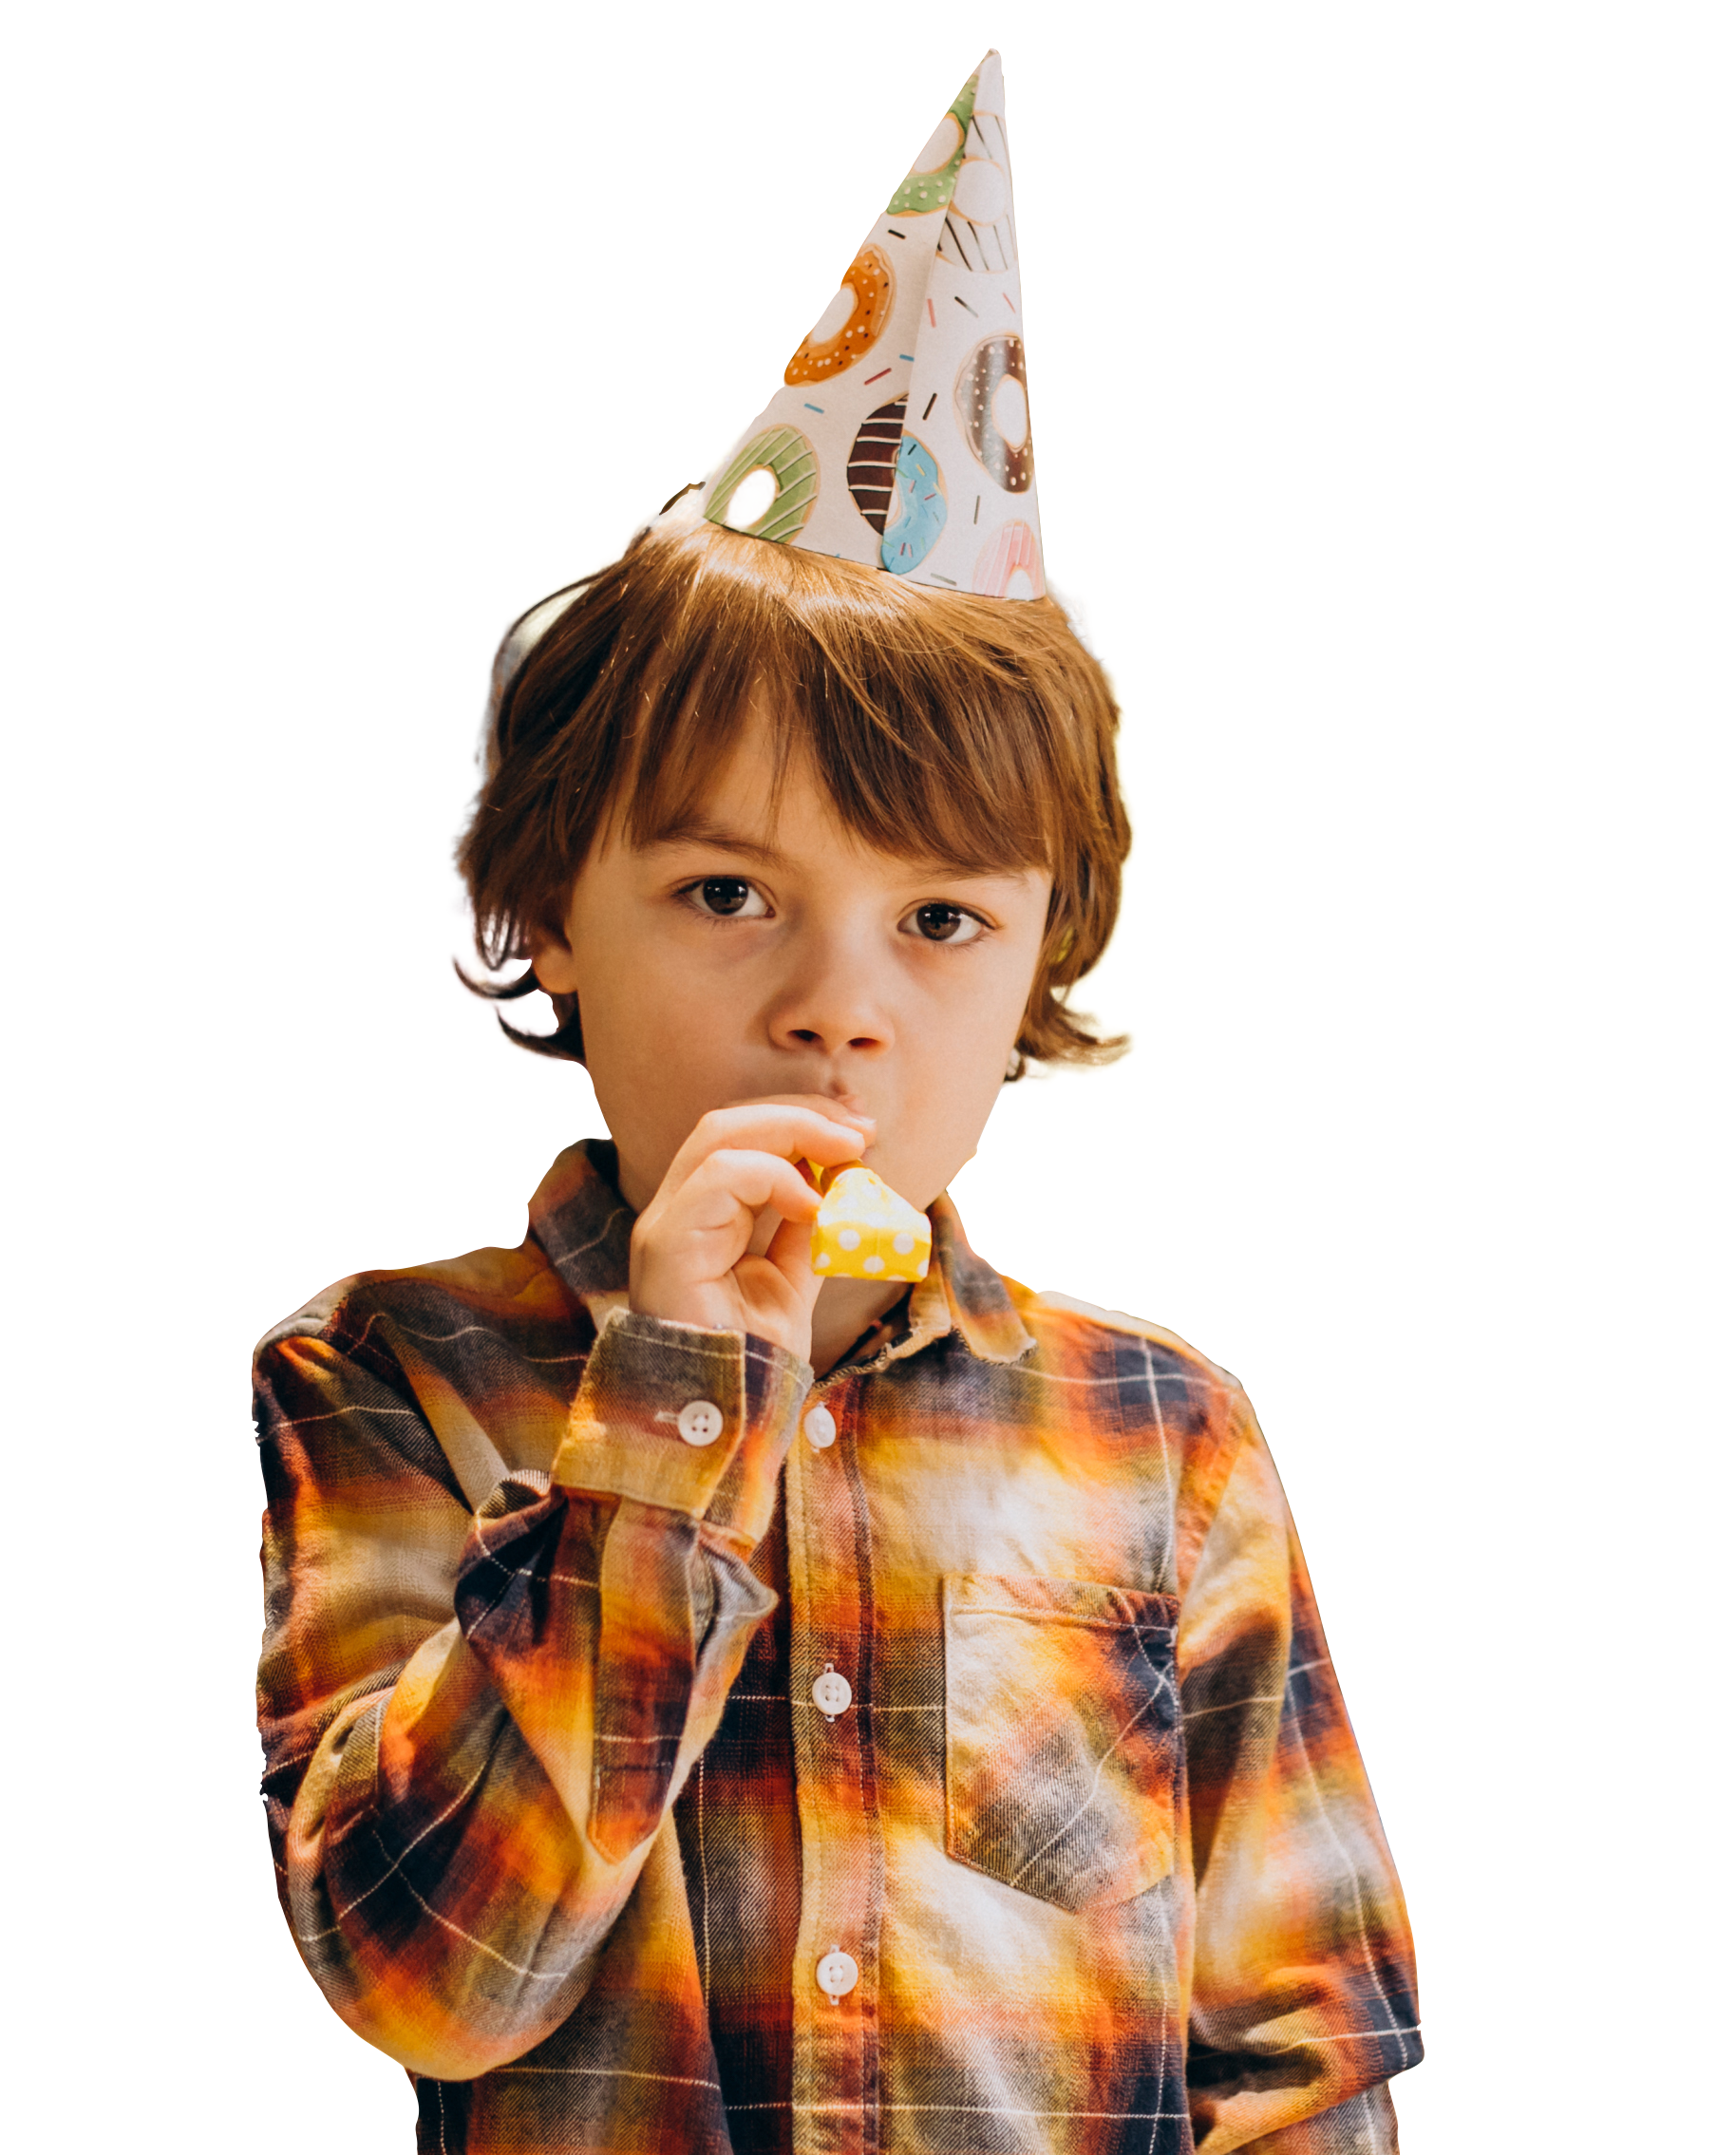 kids-having-fun-birthday-party-with-balloons-cake